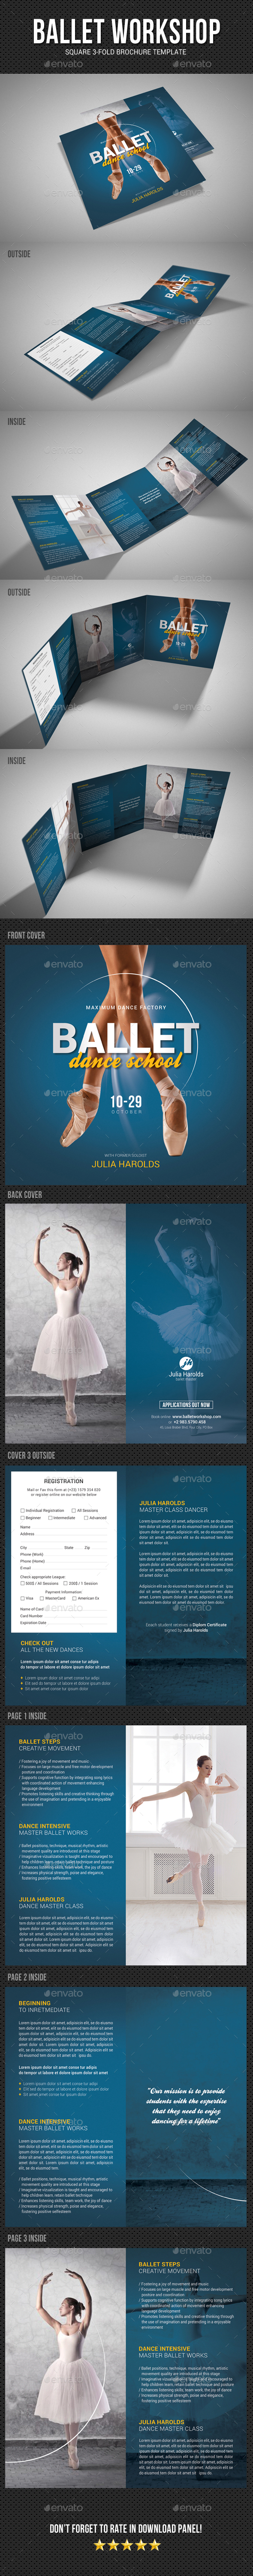 Square Ballet Workshop Brochure - Brochures Print Templates